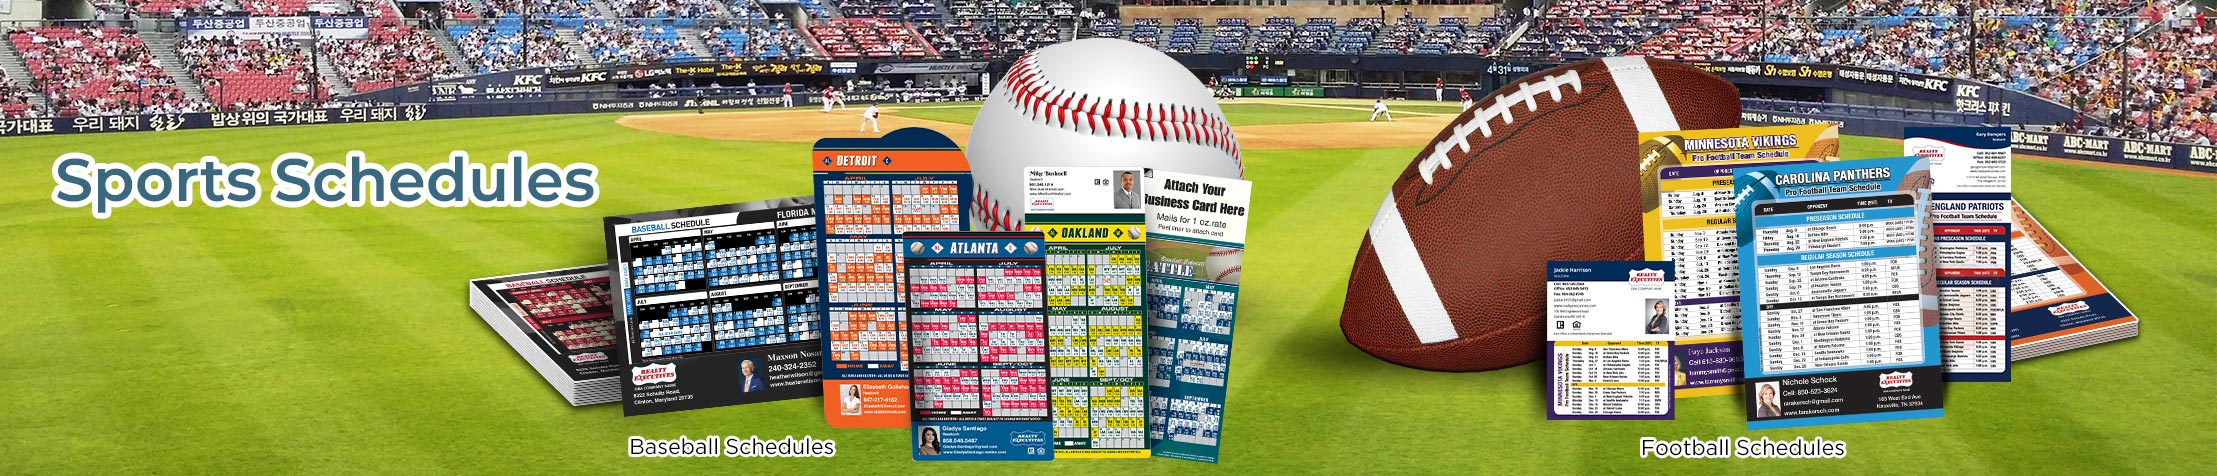 Realty Executives Real Estate Sports Schedules - Realty Executives custom sports schedule magnets | BestPrintBuy.com